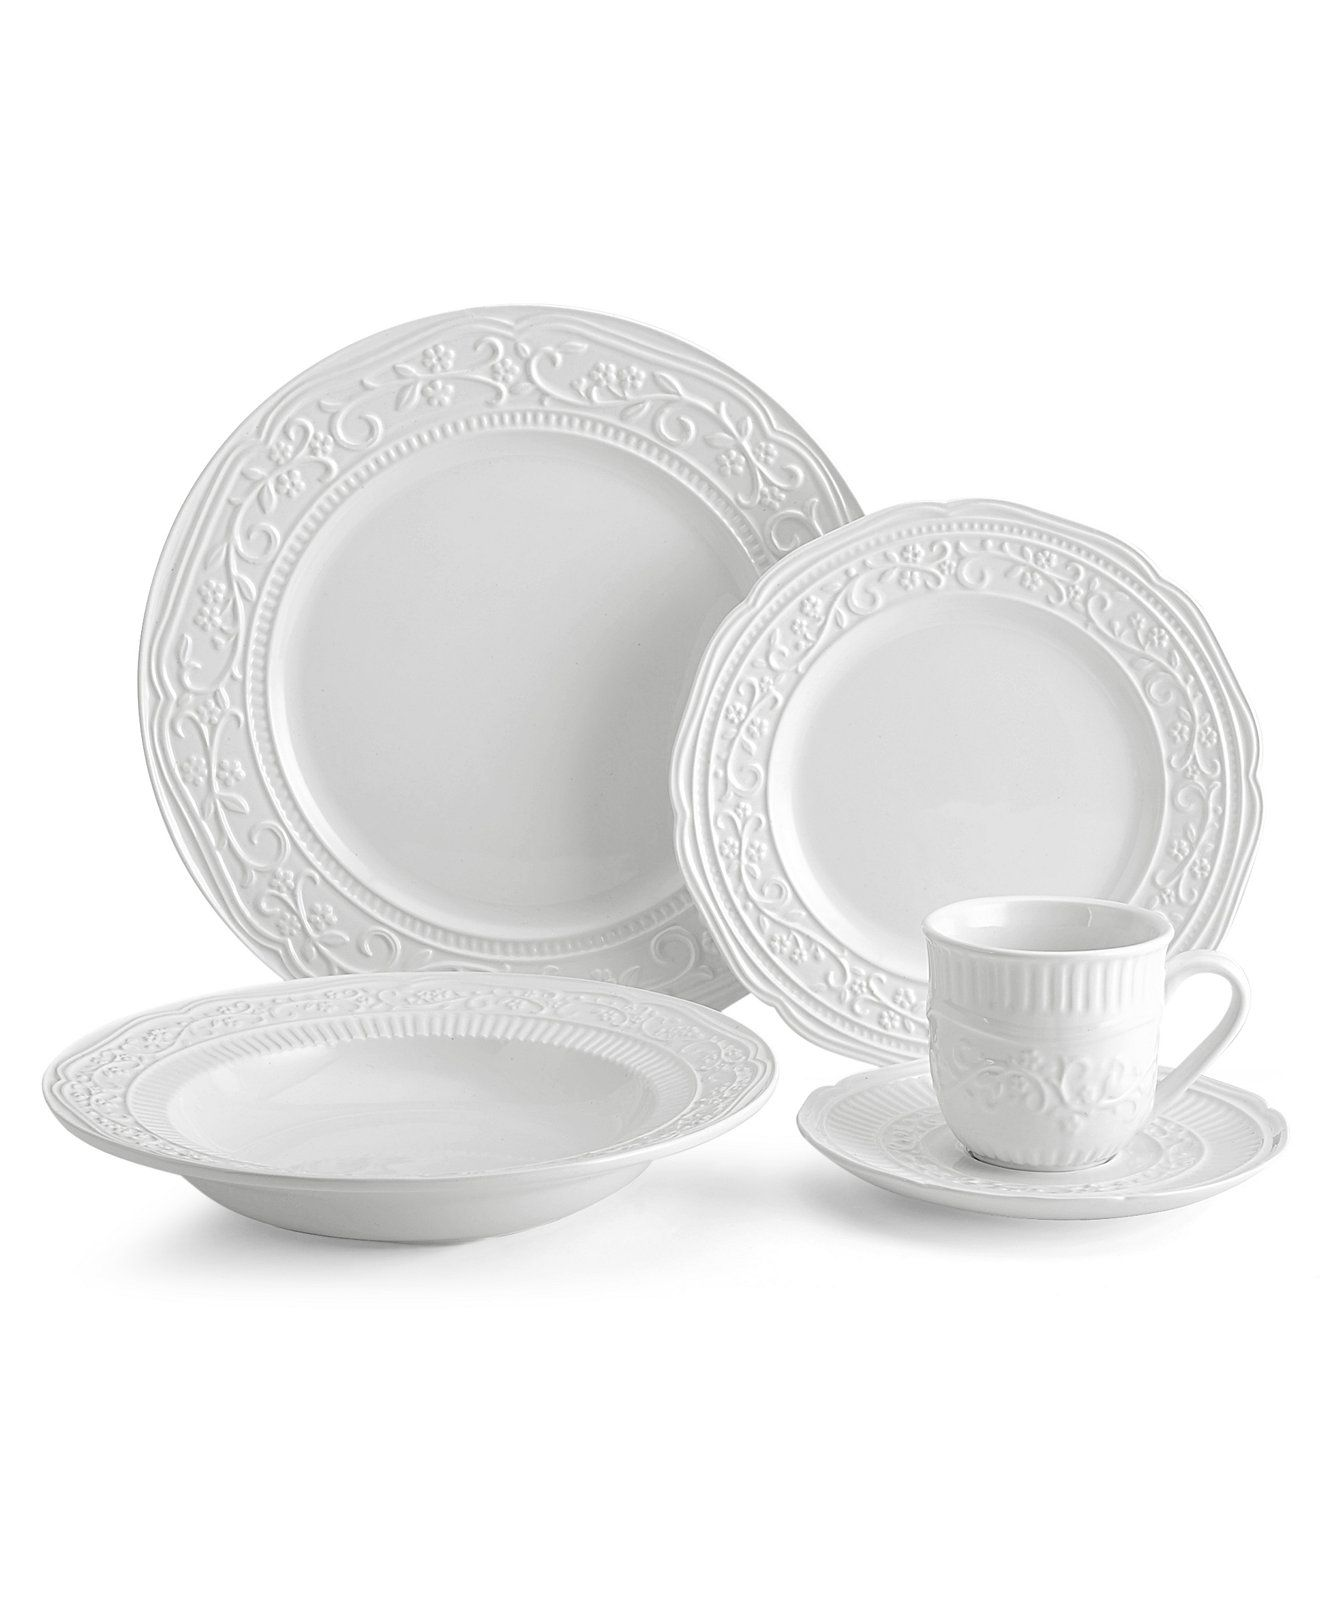 Mikasa Dinnerware American Countryside Collection  sc 1 st  Pinterest & Mikasa Dinnerware American Countryside Collection | Mikasa White ...